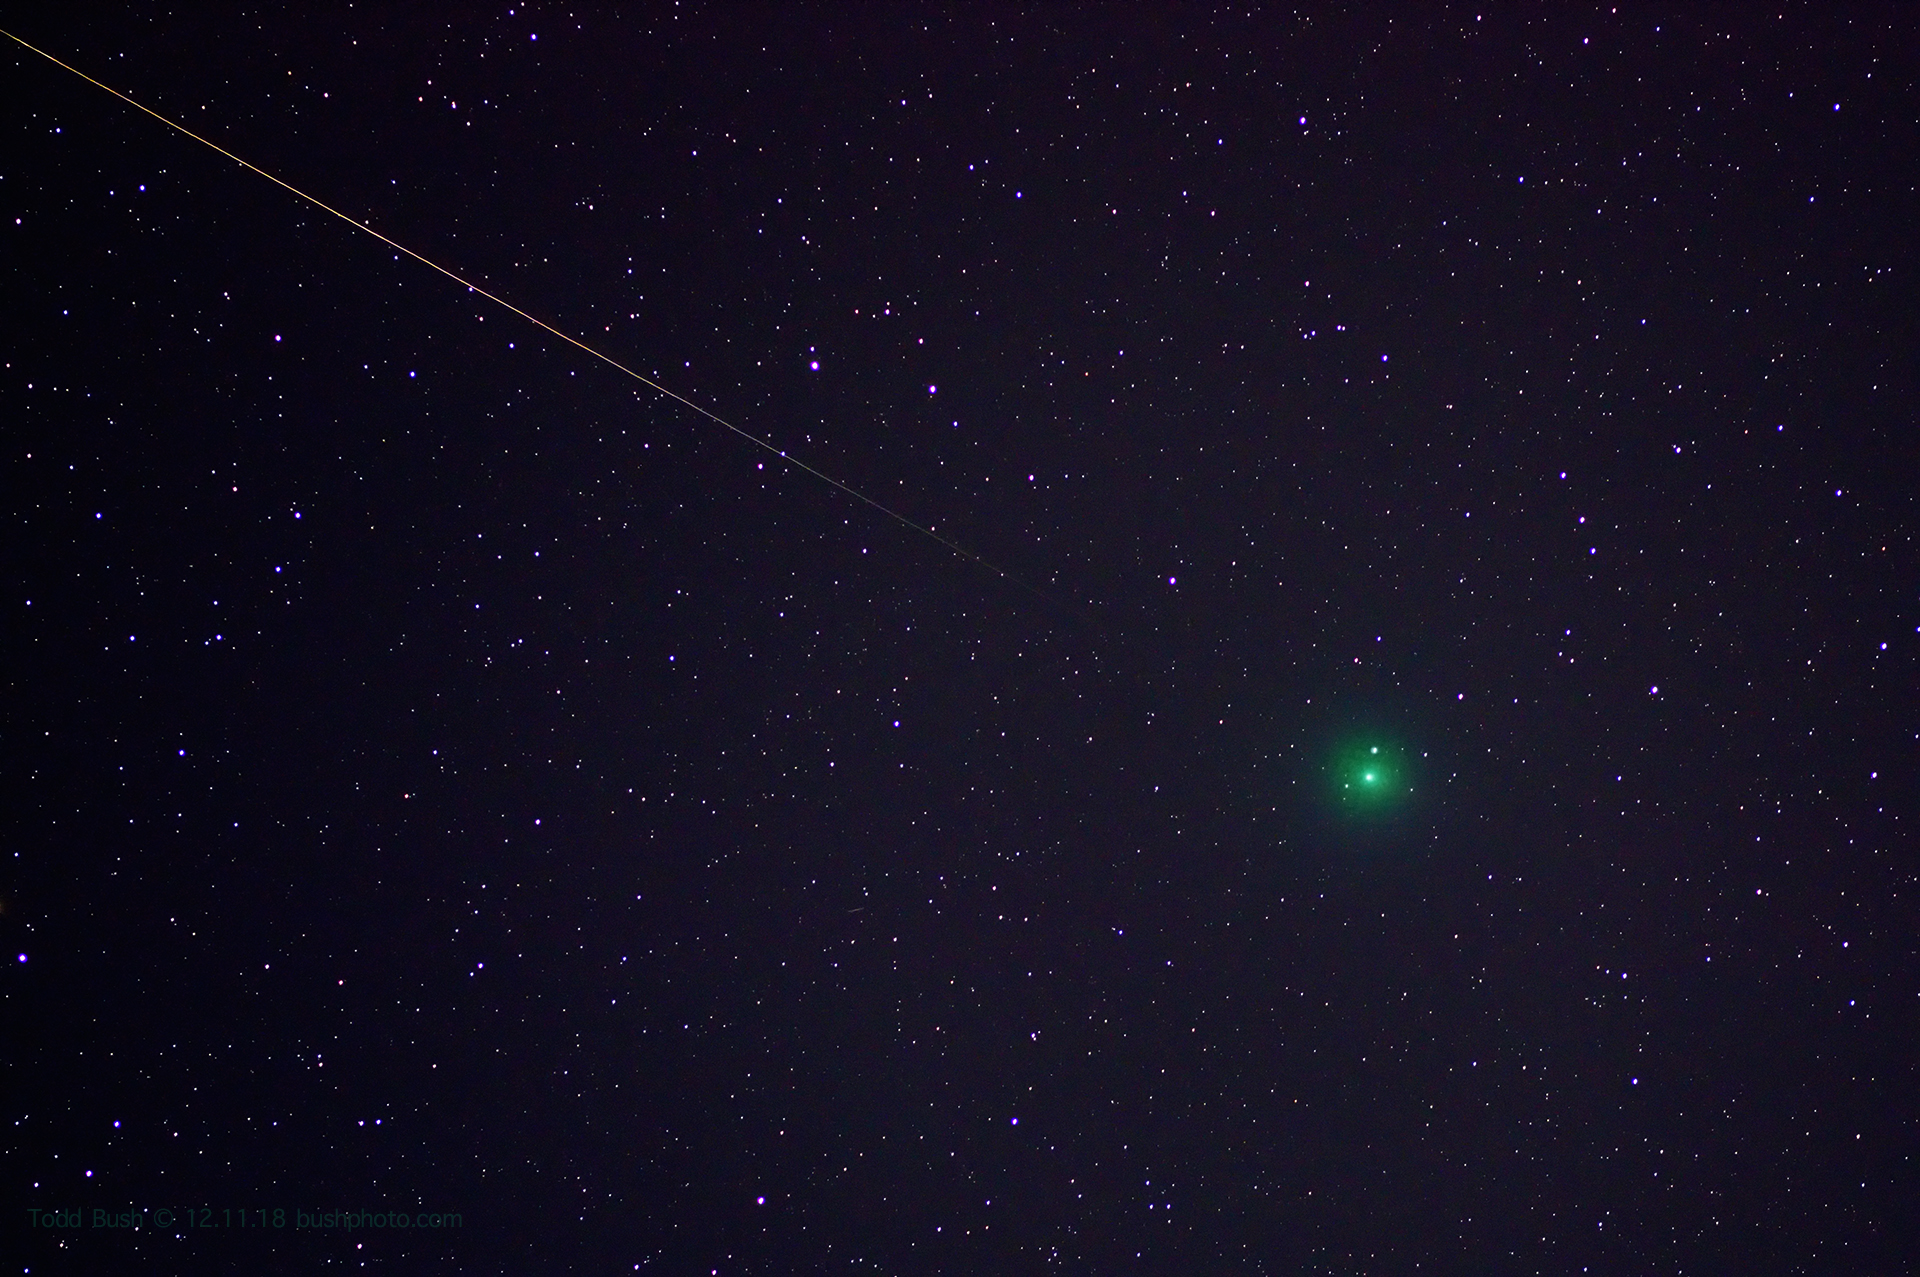 Christmas Comet.On A Clear Night Look To The Sky To See The Christmas